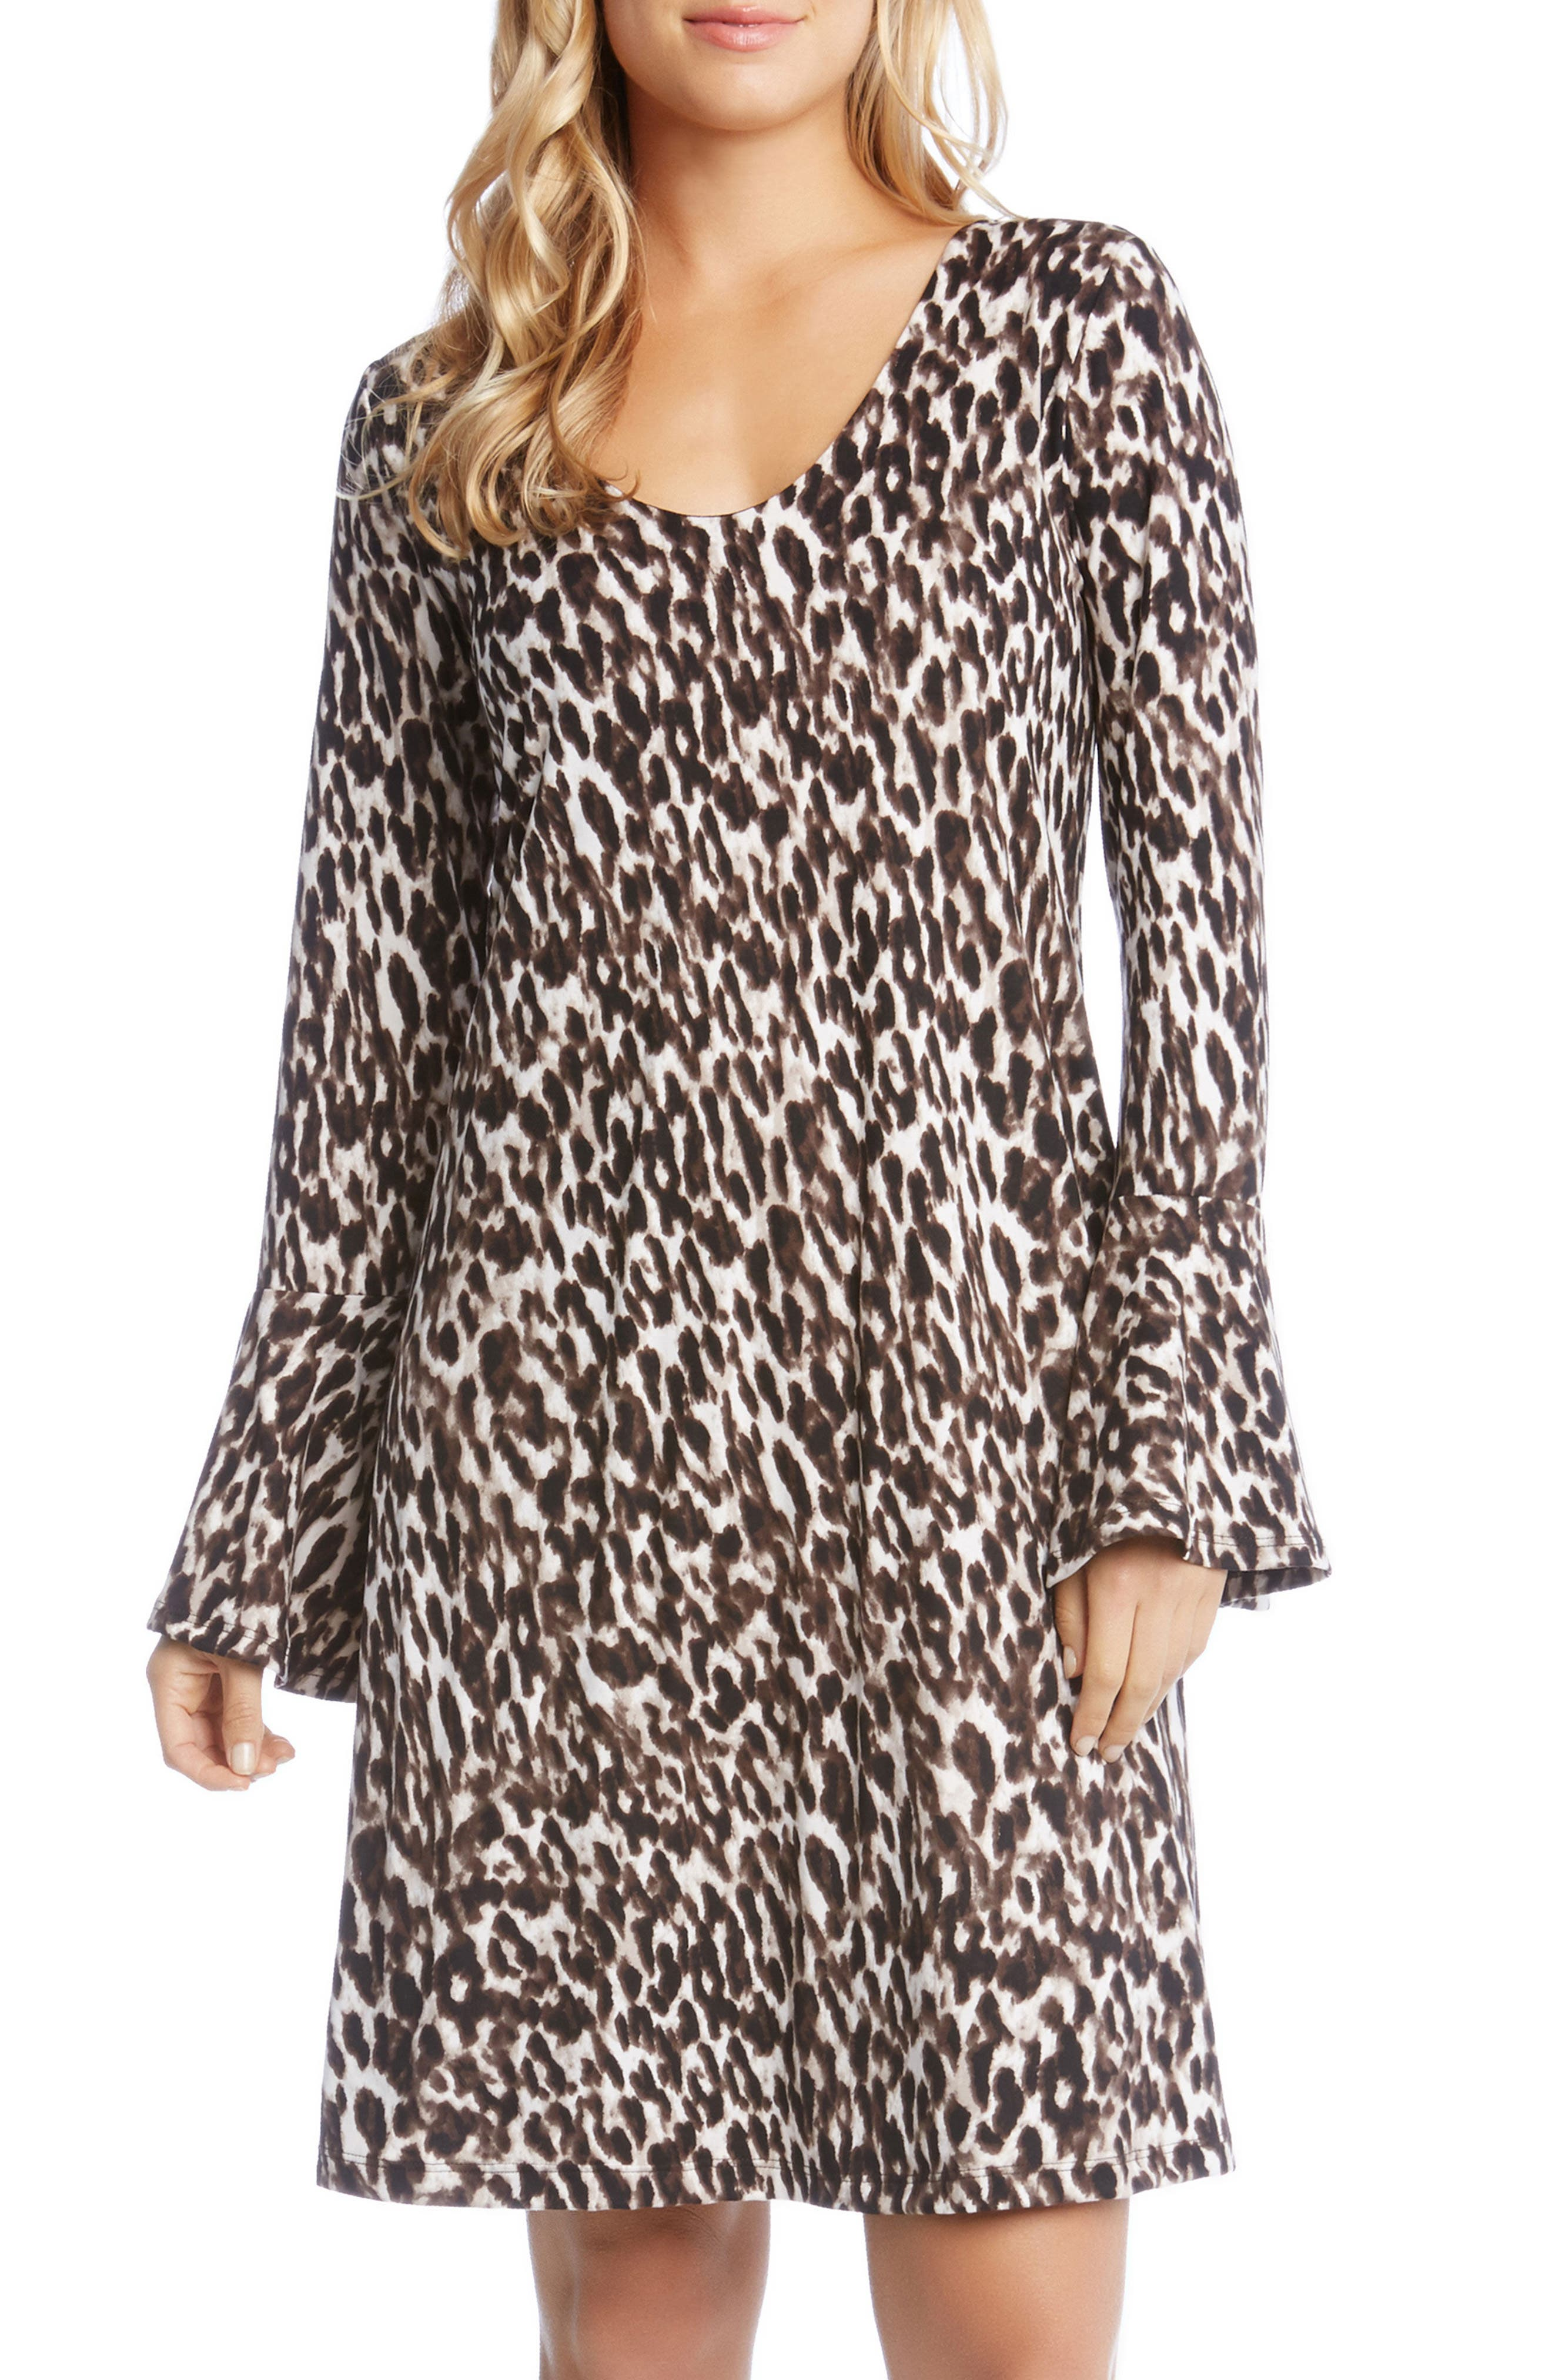 Bell Sleeve Brushed Knit Dress,                             Main thumbnail 1, color,                             Leopard